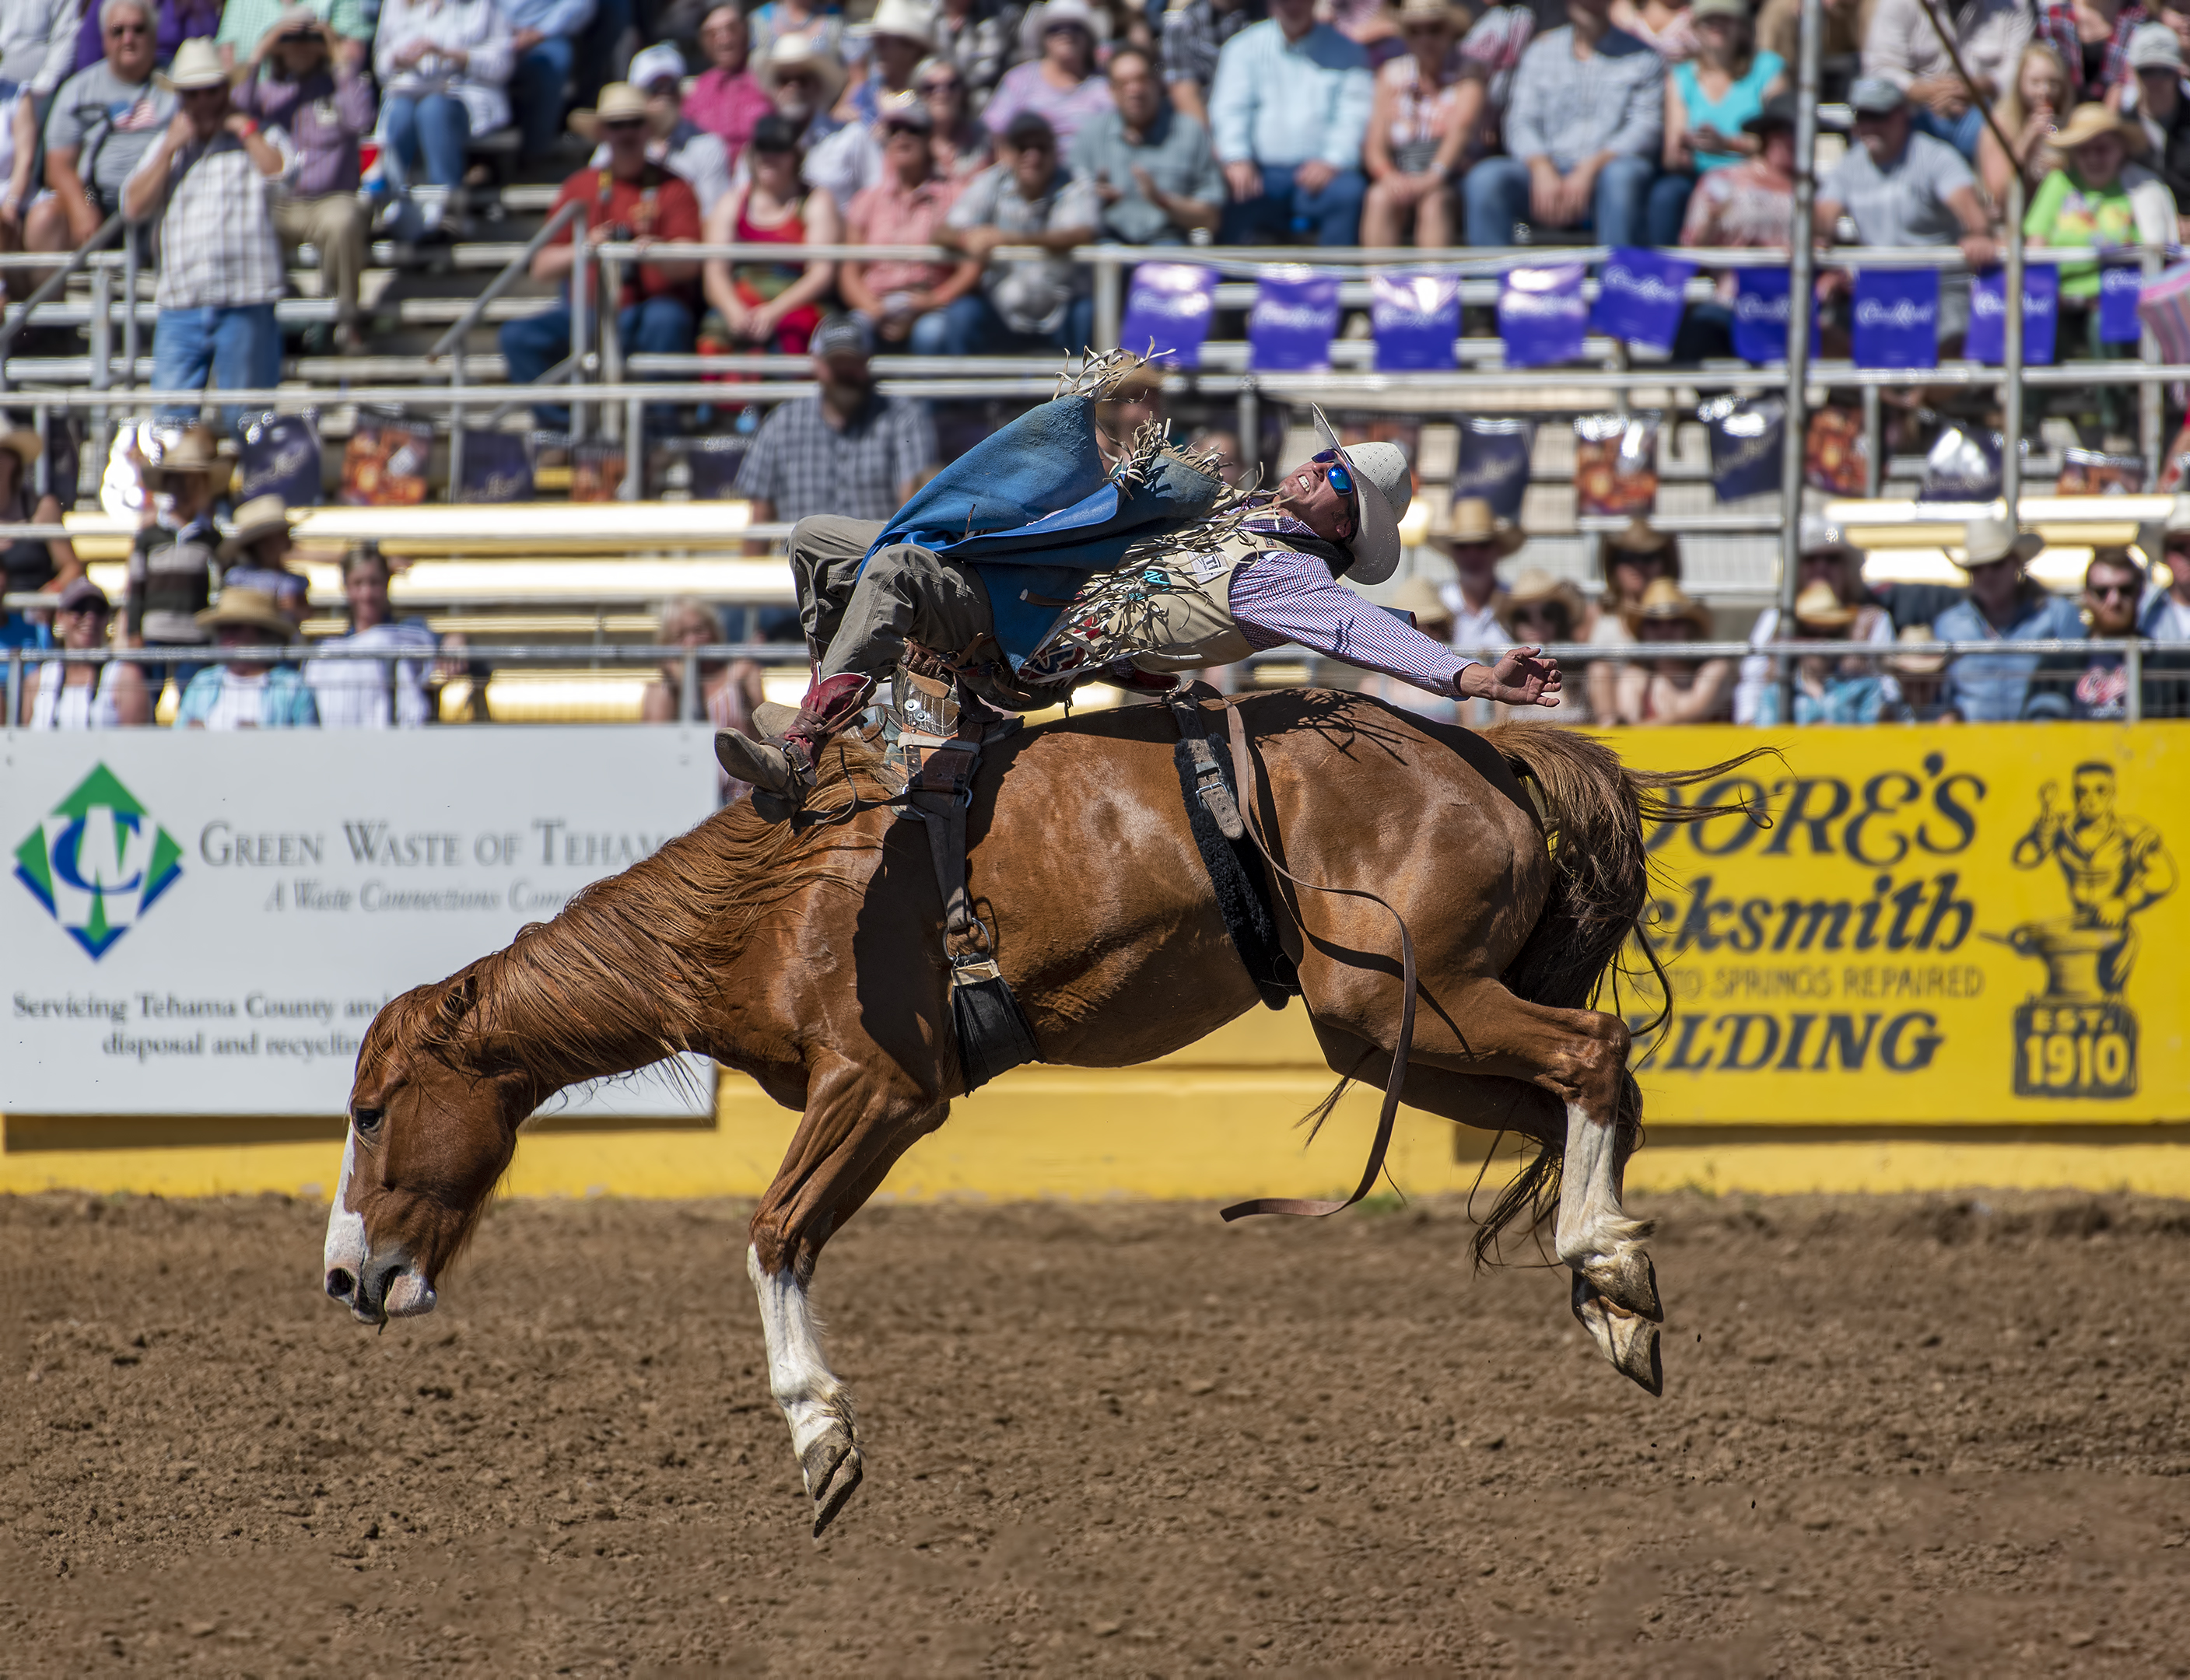 Tray Chambliss III on Lilly Loose Lips red bluff roundup rodeo bronco riding